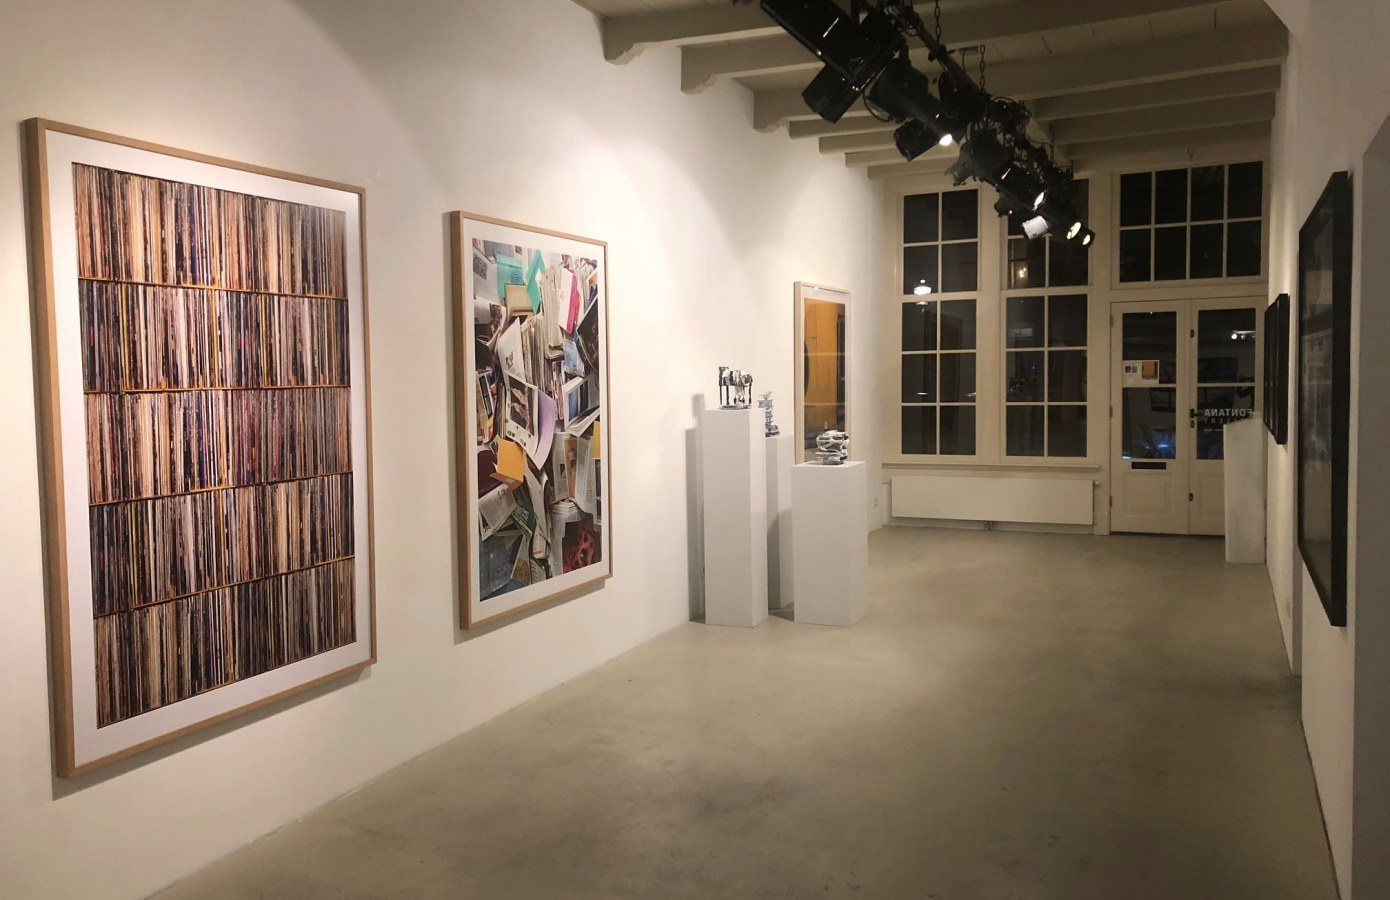 Fontana Winter Group Exhibition, Frans Beerens, Jan Banning, Marchand & Meffre, Robert Polidori,